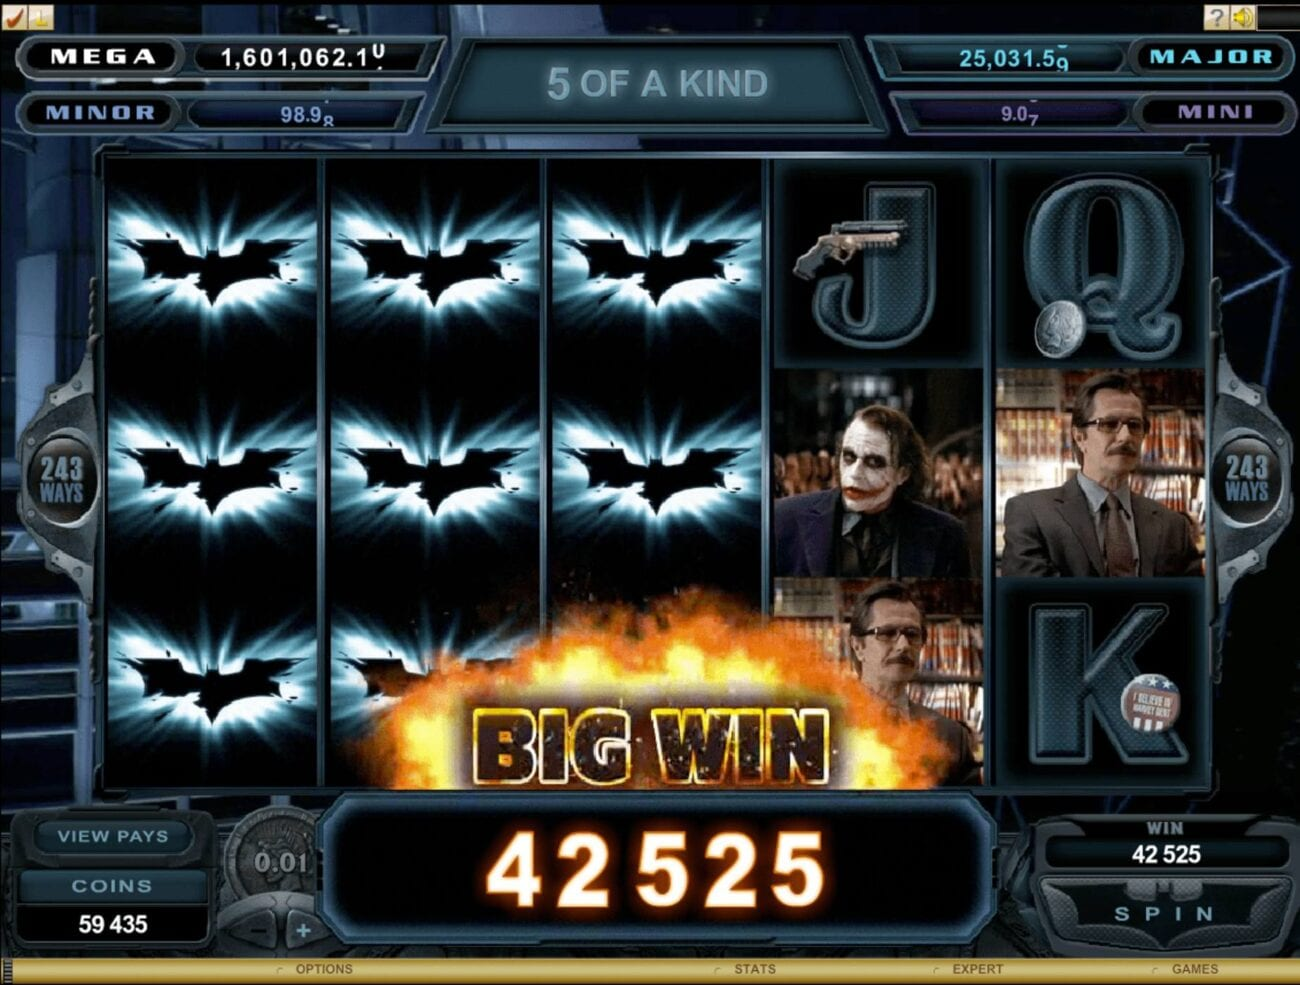 Movies can inspire fun games. Here are the best casino slots inspired by popular franchises.